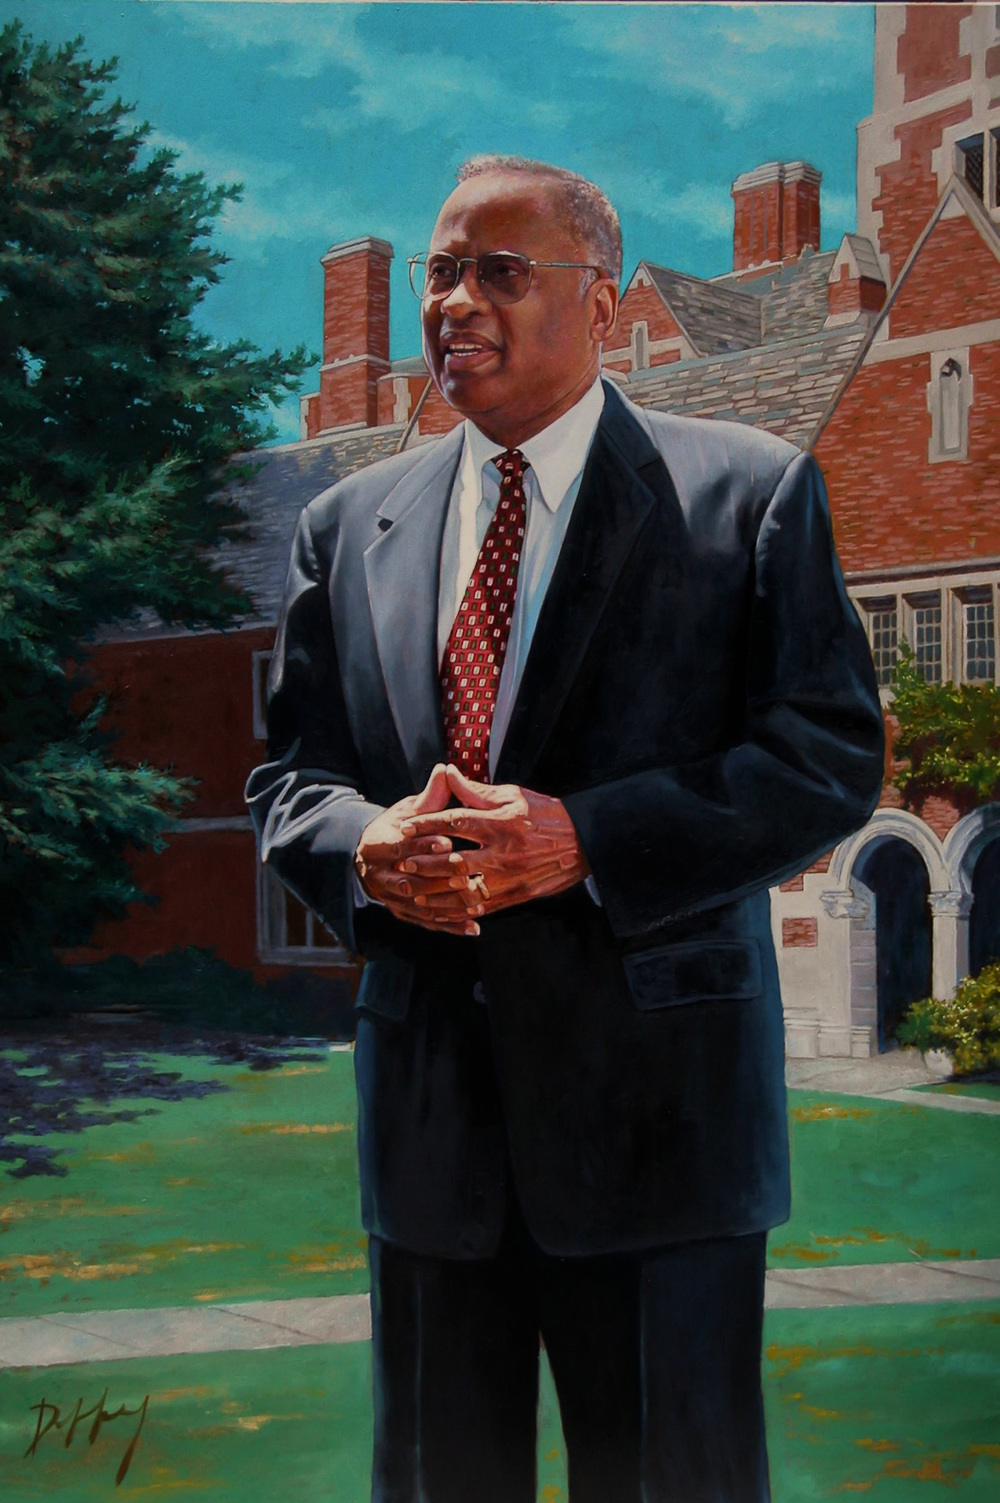 14-James-Thomas-Yale-Law-School-44x60-112x153cm.jpg